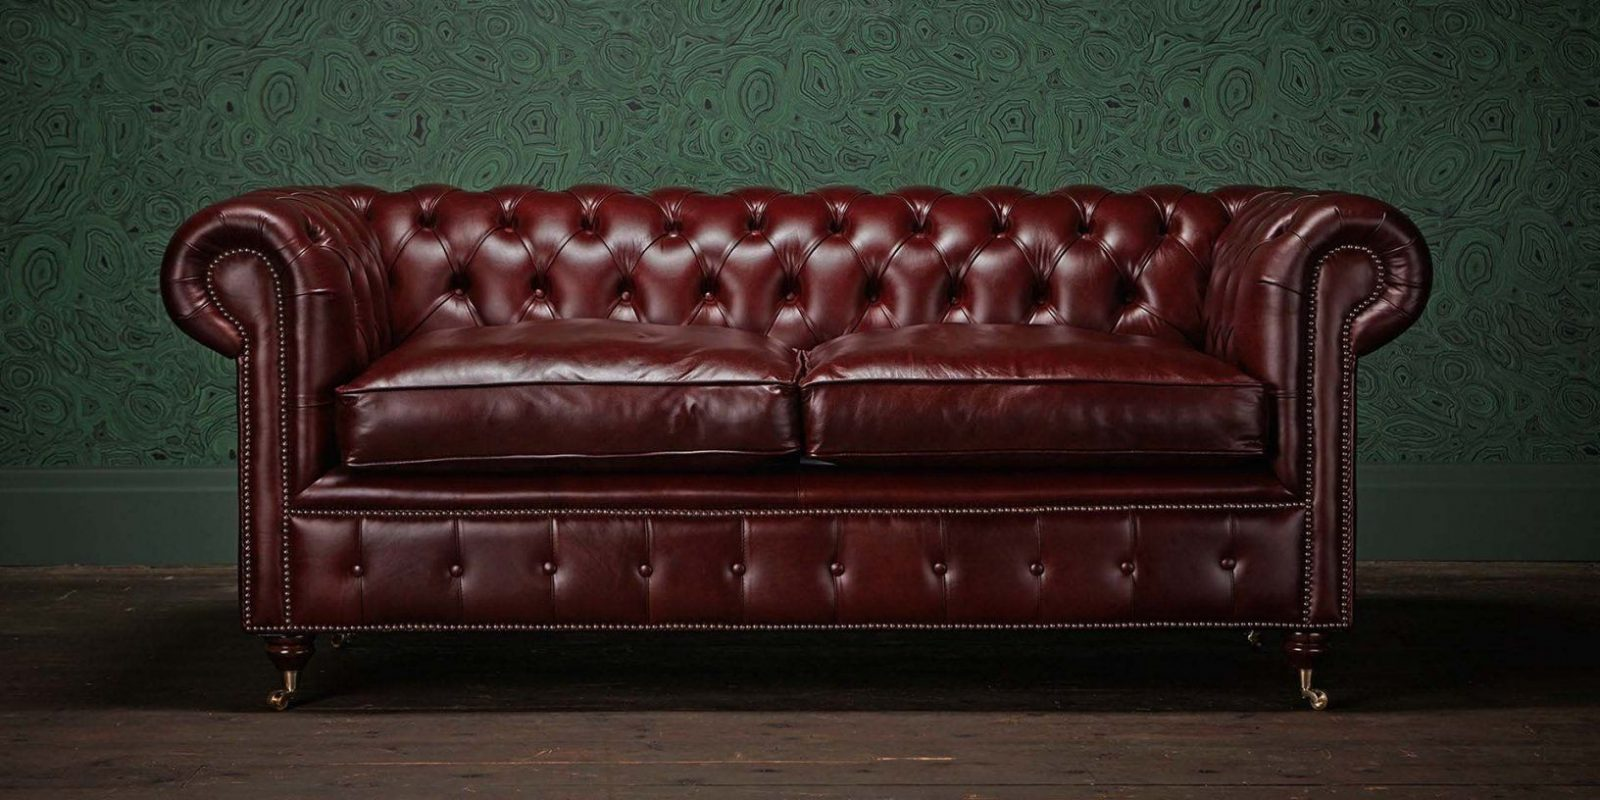 Black Chesterfield Sofa Gray Chesterfield Sofa Green Leather von Green Leather Chesterfield Sofa Photo